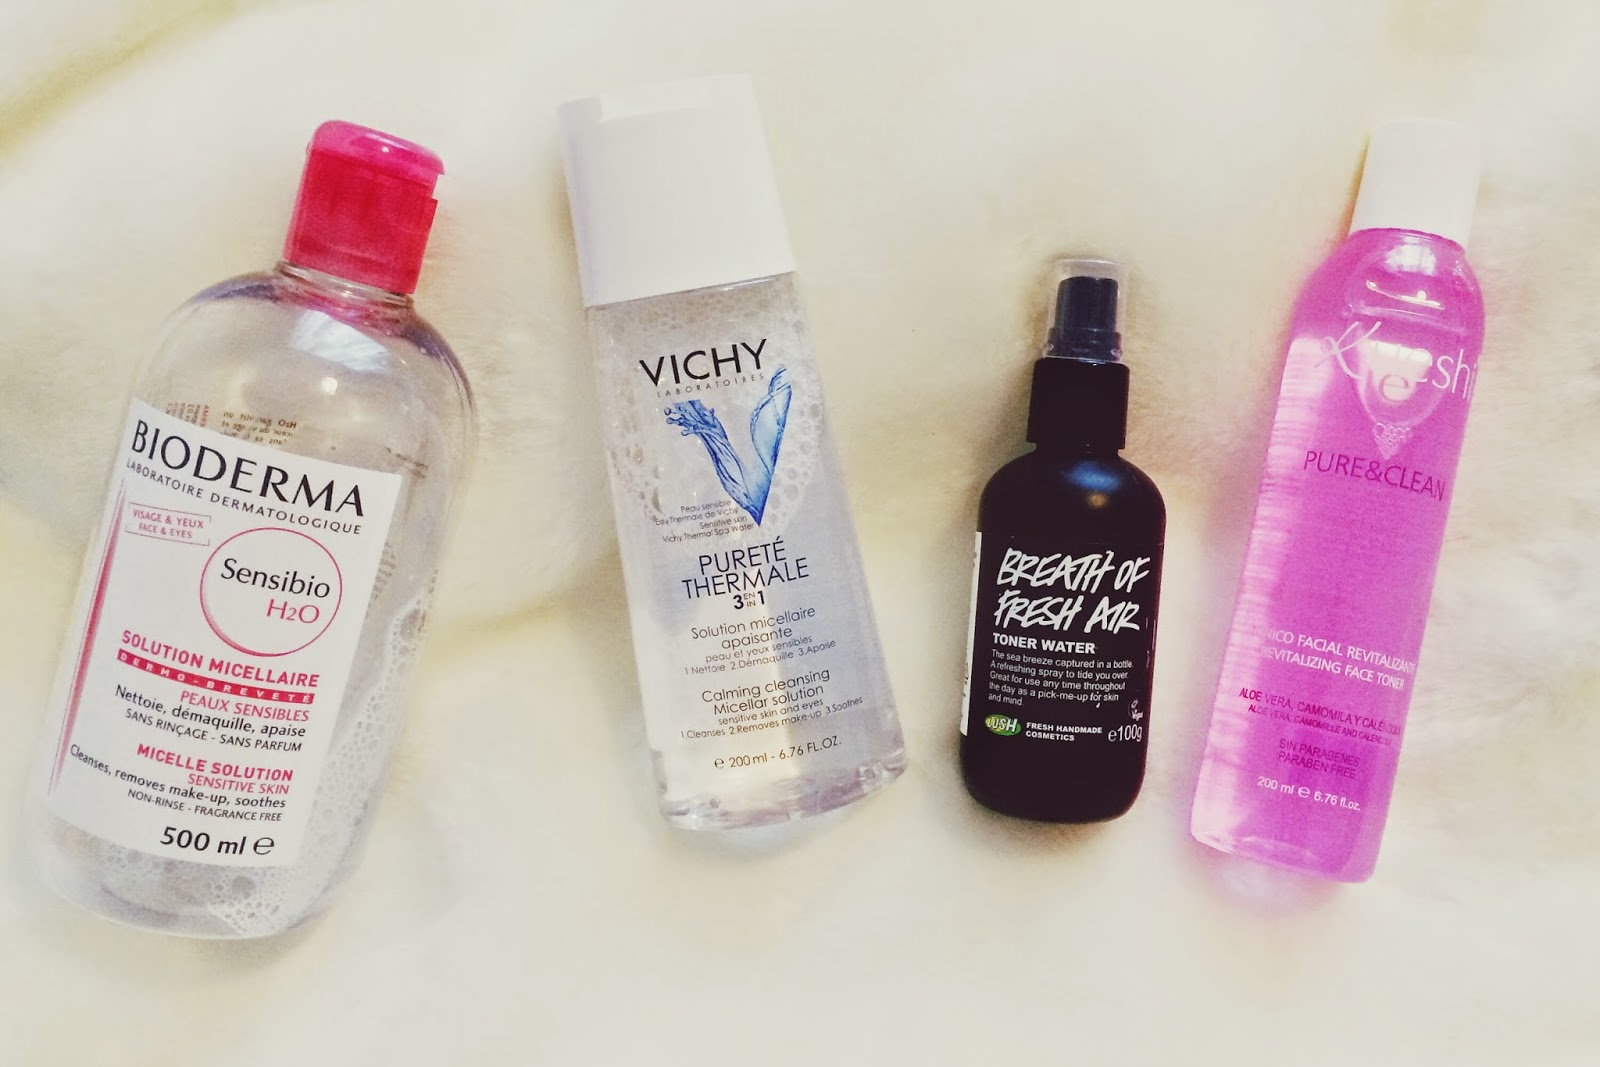 FashionFake, UK beauty blog, beauty bloggers, toners for sensitive skin, Lush toner, Bioderma review, VICHY micellar toner review